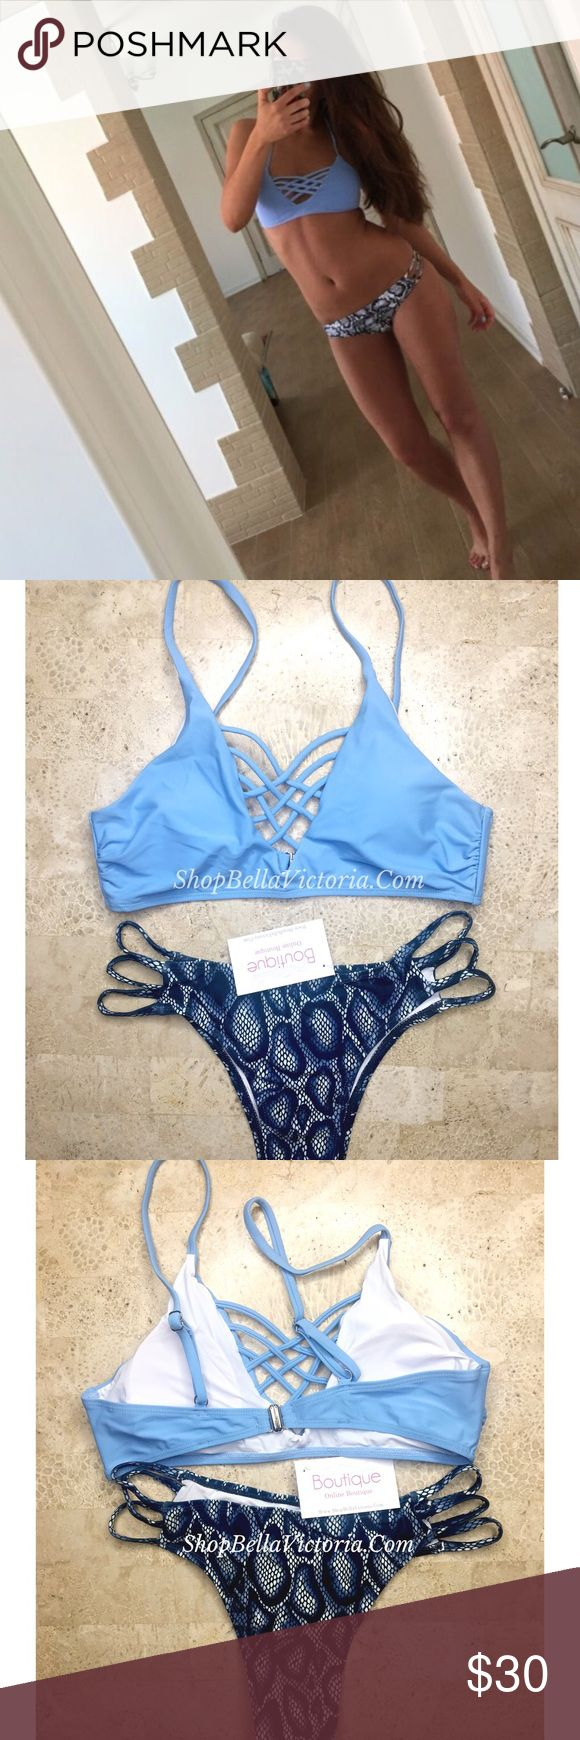 Dianey- Blue Animal Print Strappy Bikini Set New ! Dianey- Blue Animal Print Strappy Bikini Set Light Blue Top Comes Padded Adjustable Straps Clips From Back Cheeky Strappy Bottom Colors Available: Blue Size Available: Medium Bundle to save 💕 Follow & tag: Ig: shopBellaVictoria Fb: Bella Victoria BellaVictoriaBoutique Swim Bikinis